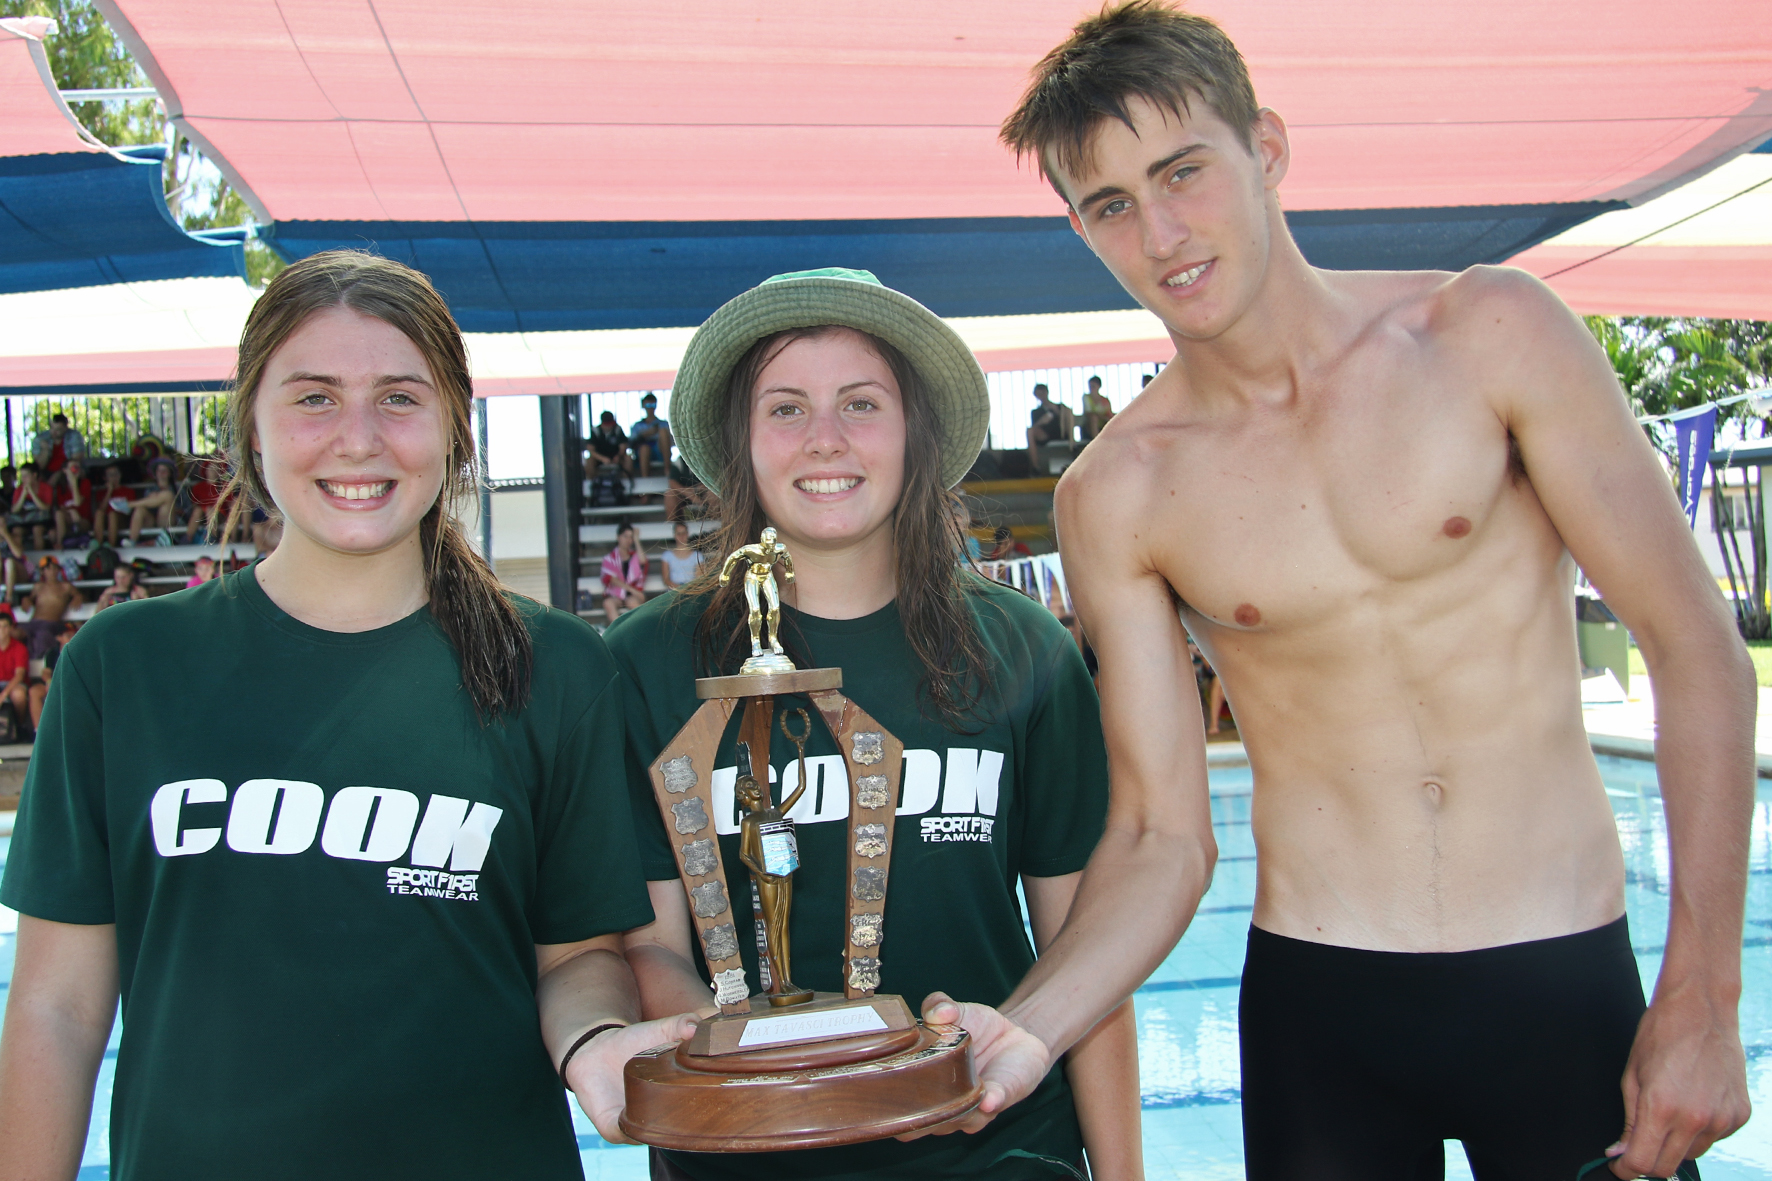 Phillip Dominate Swimming Carnival